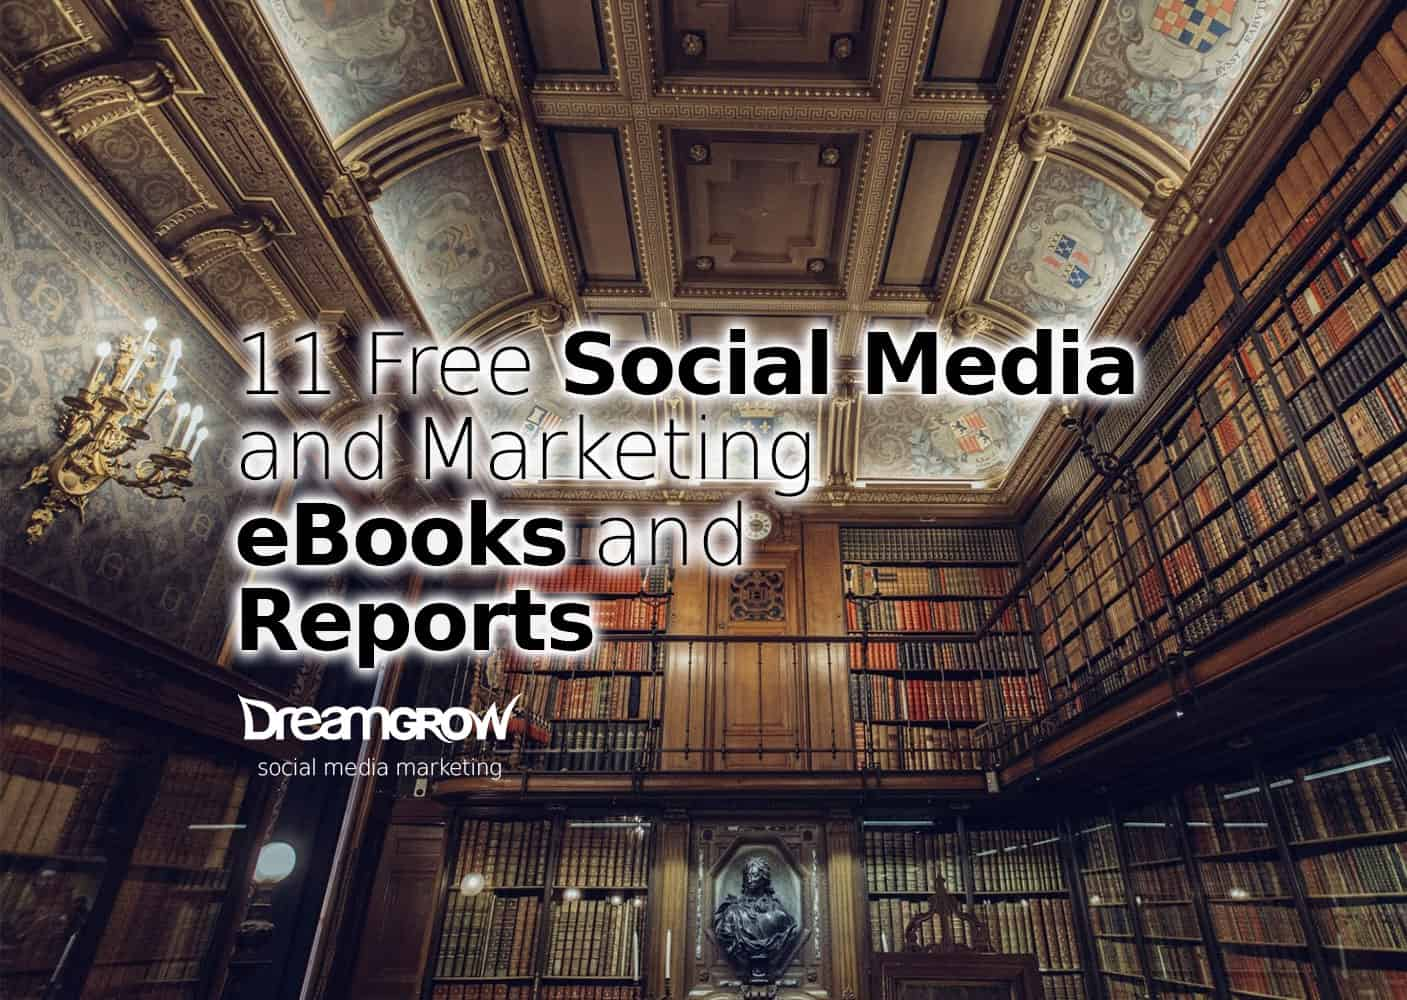 11 Free Social Media And Marketing Ebooks Reports Dreamgrow 2018 Workshop Cooporate Digital In House